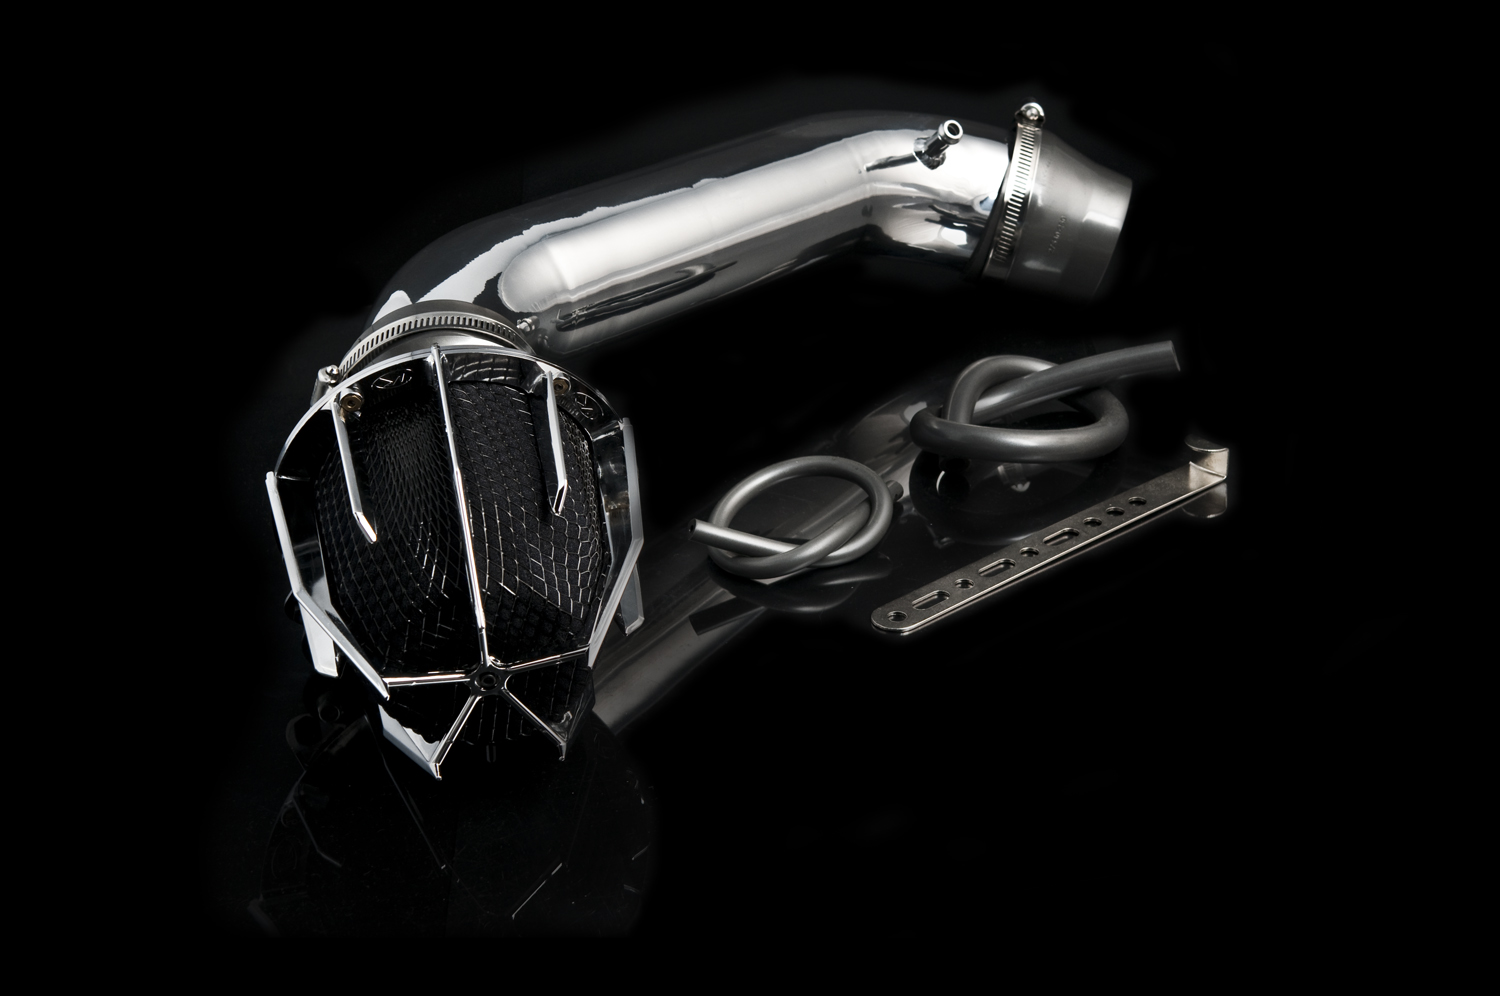 Honda Crv All Models 1997-2001 Weapon-R Dragon Air Intake